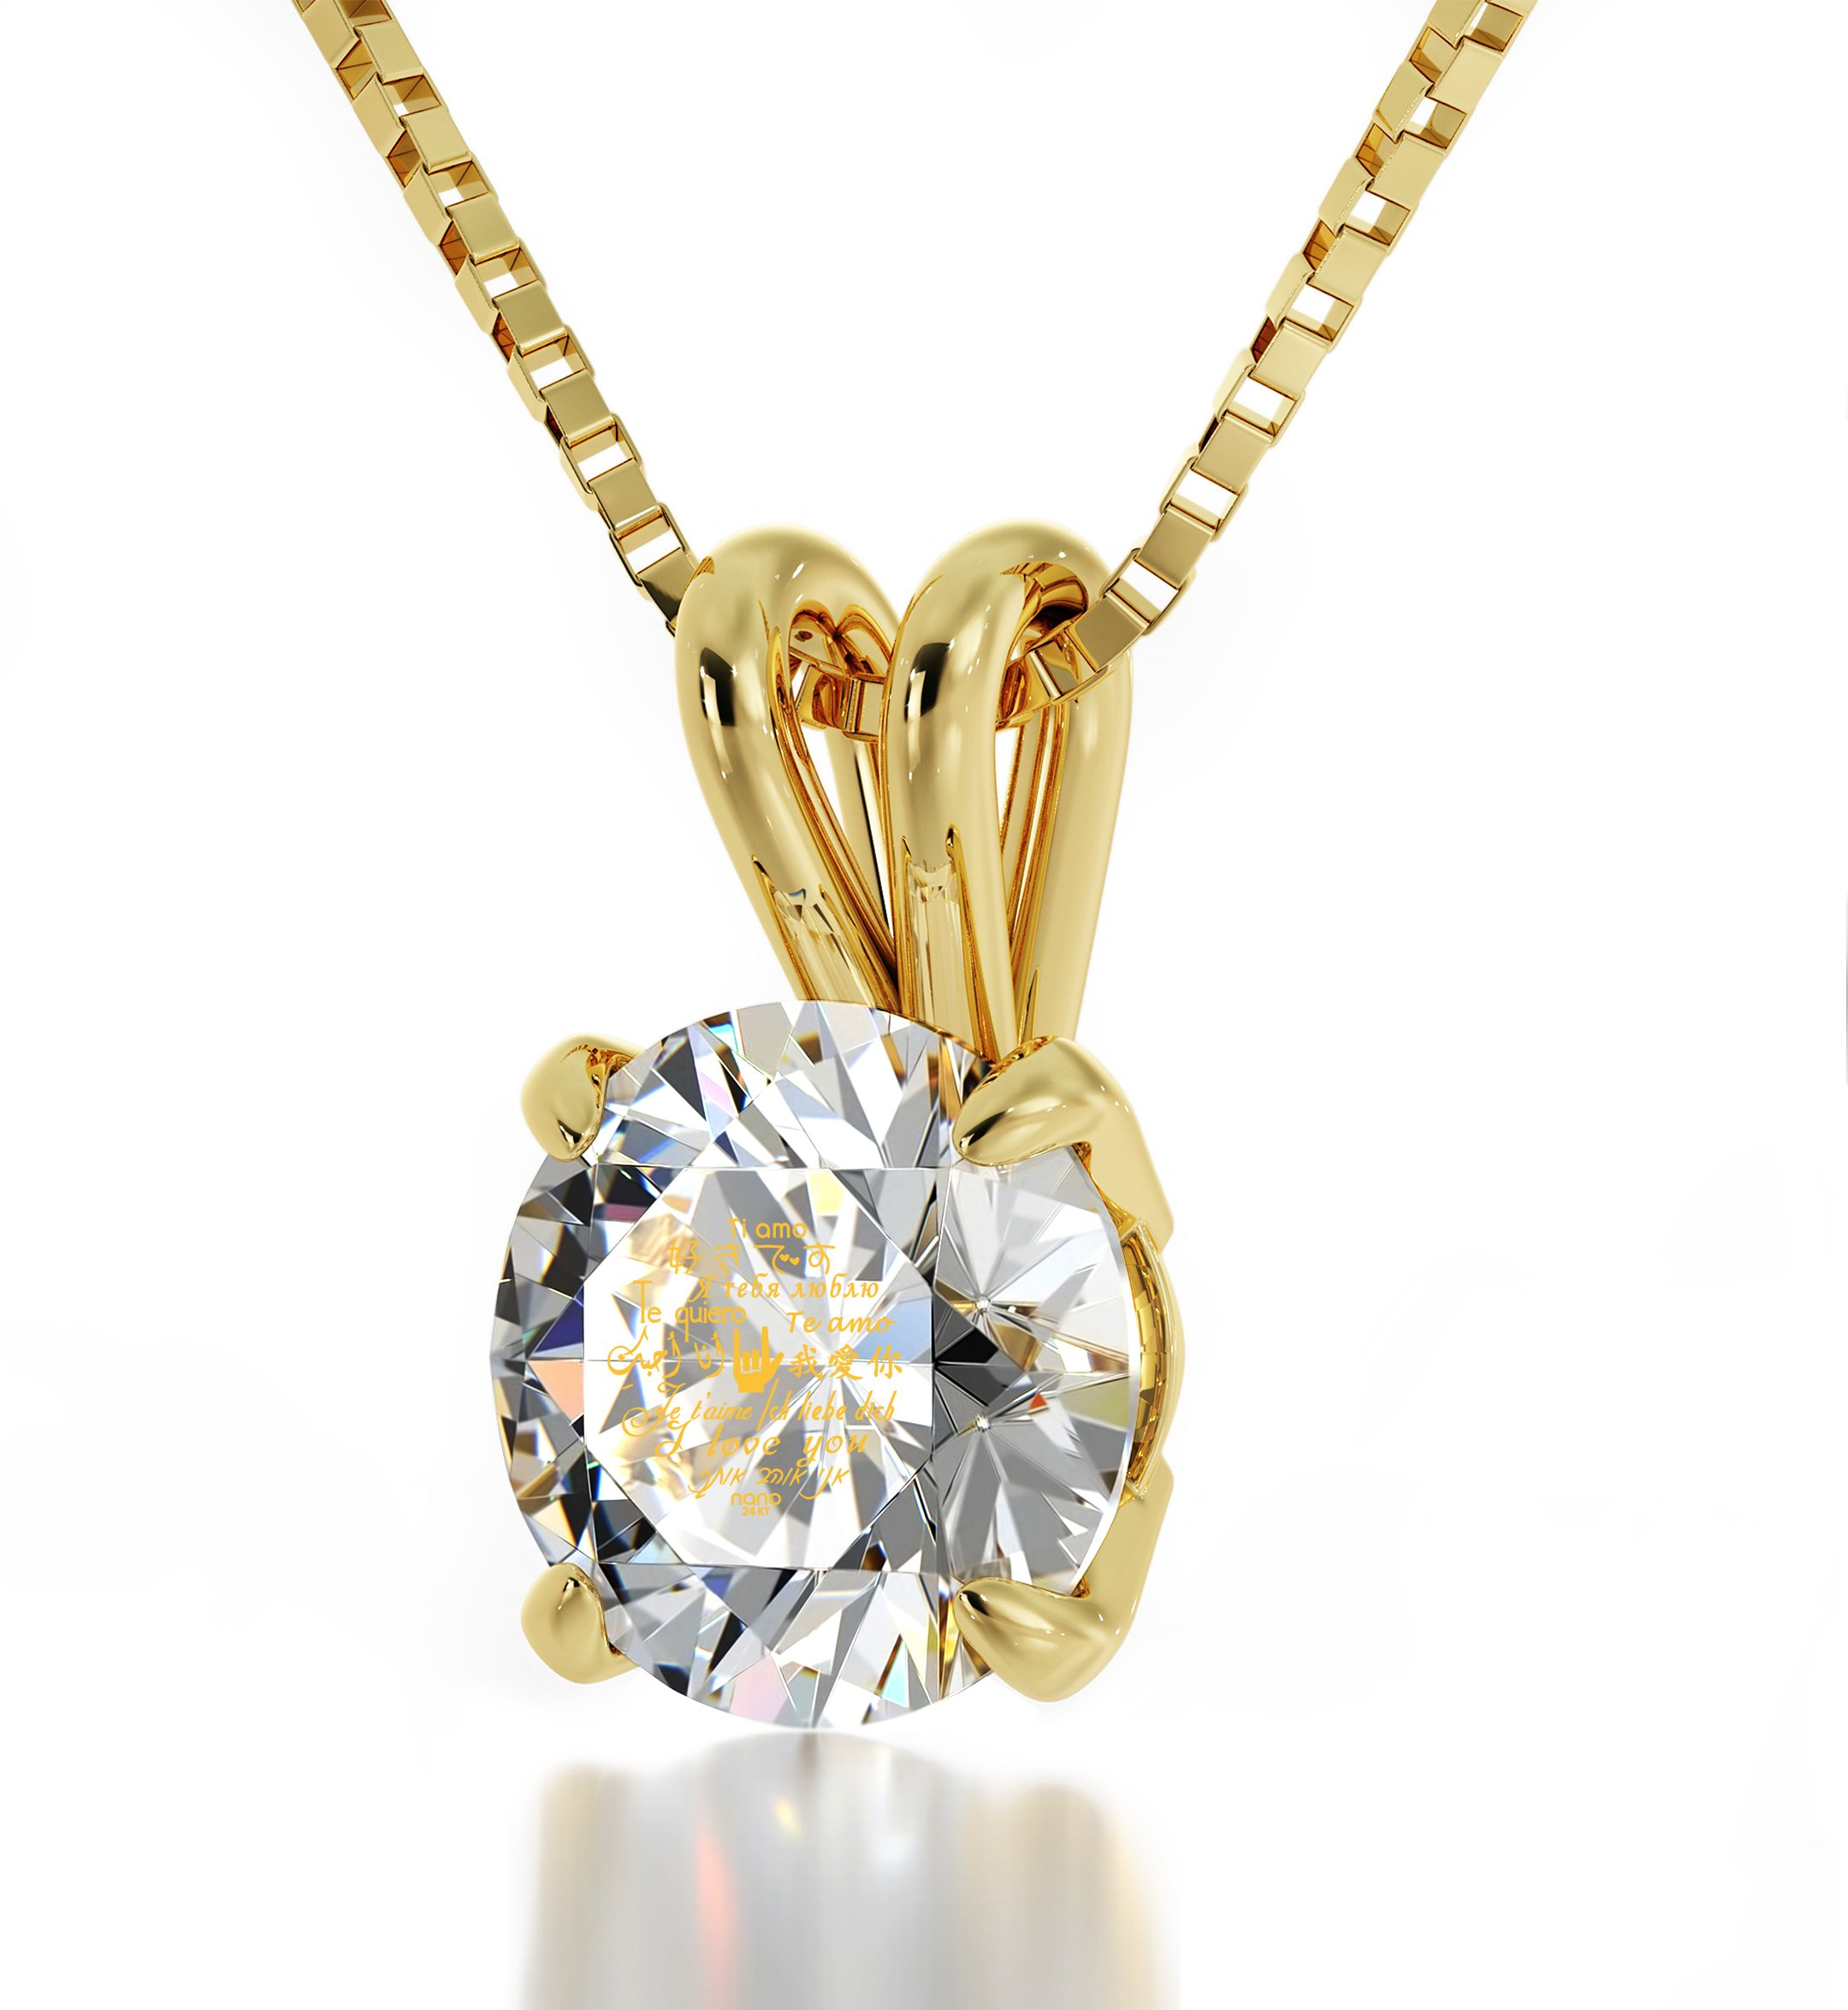 14k Yellow Gold I Love You Necklace Solitaire Pendant 12 Languages 24k on Clear Crystal, 18'' Gold Filled by Nano Jewelry (Image #2)